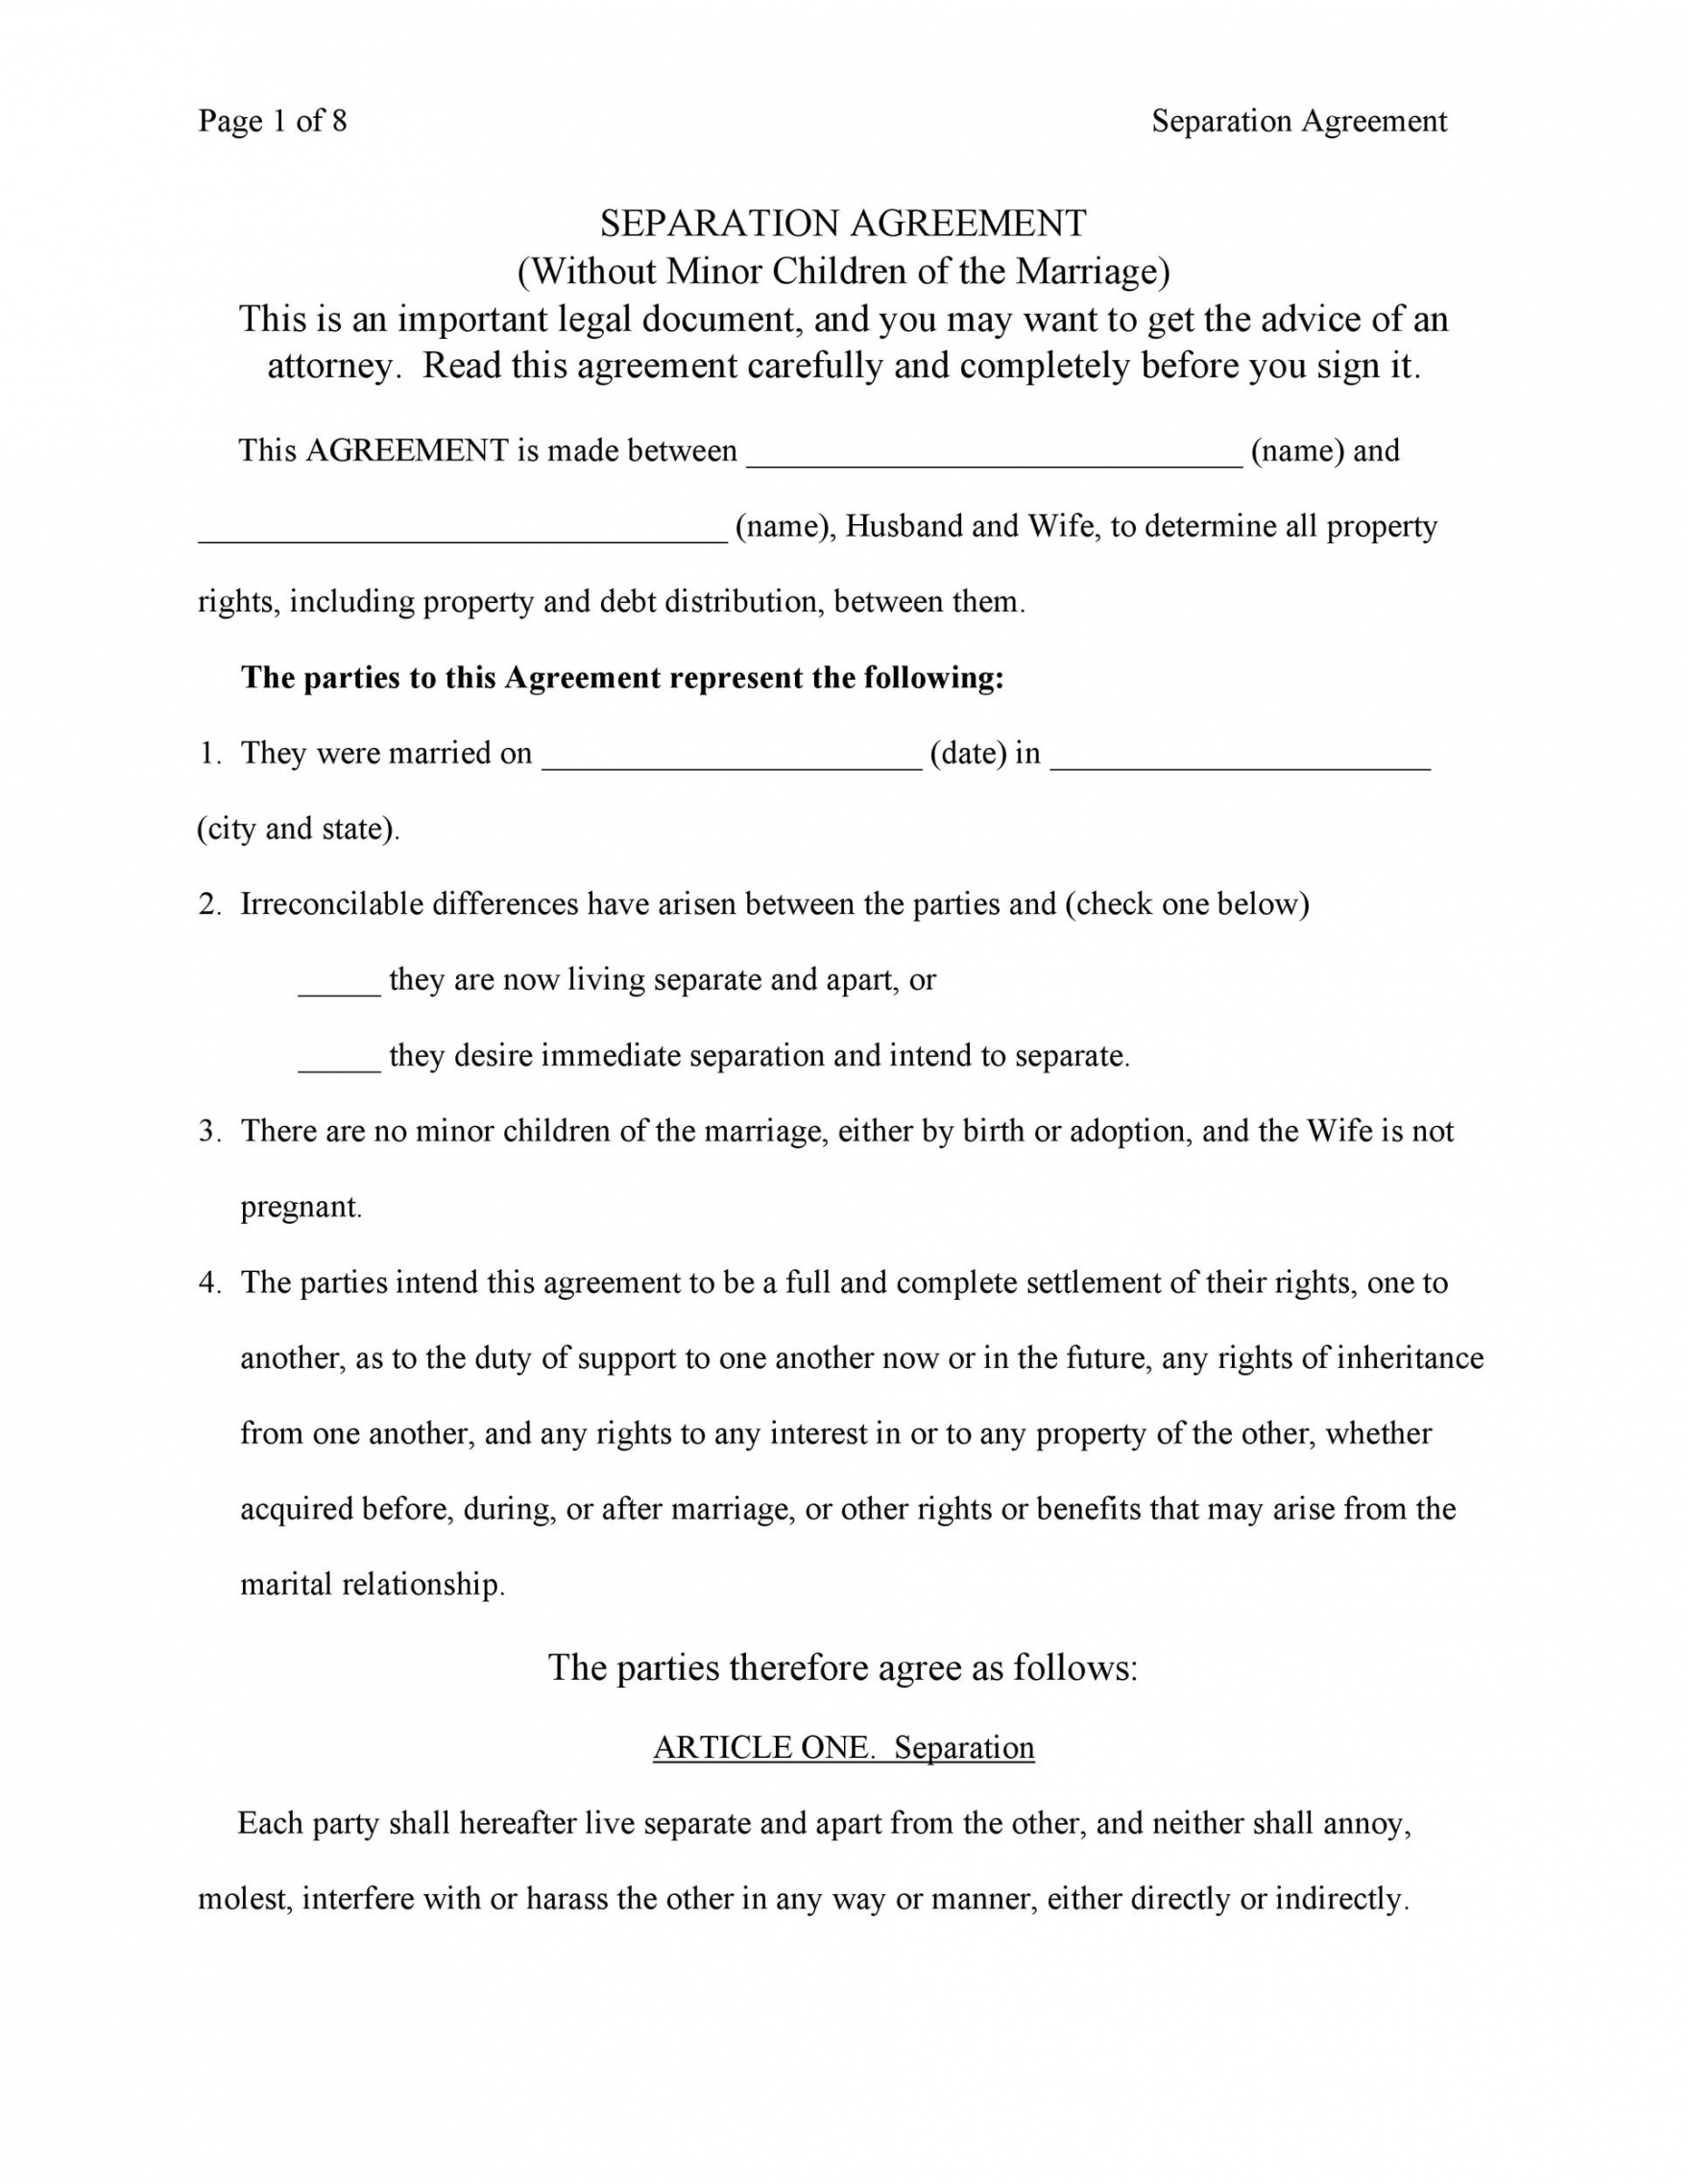 Separation And Property Settlement Agreement Template